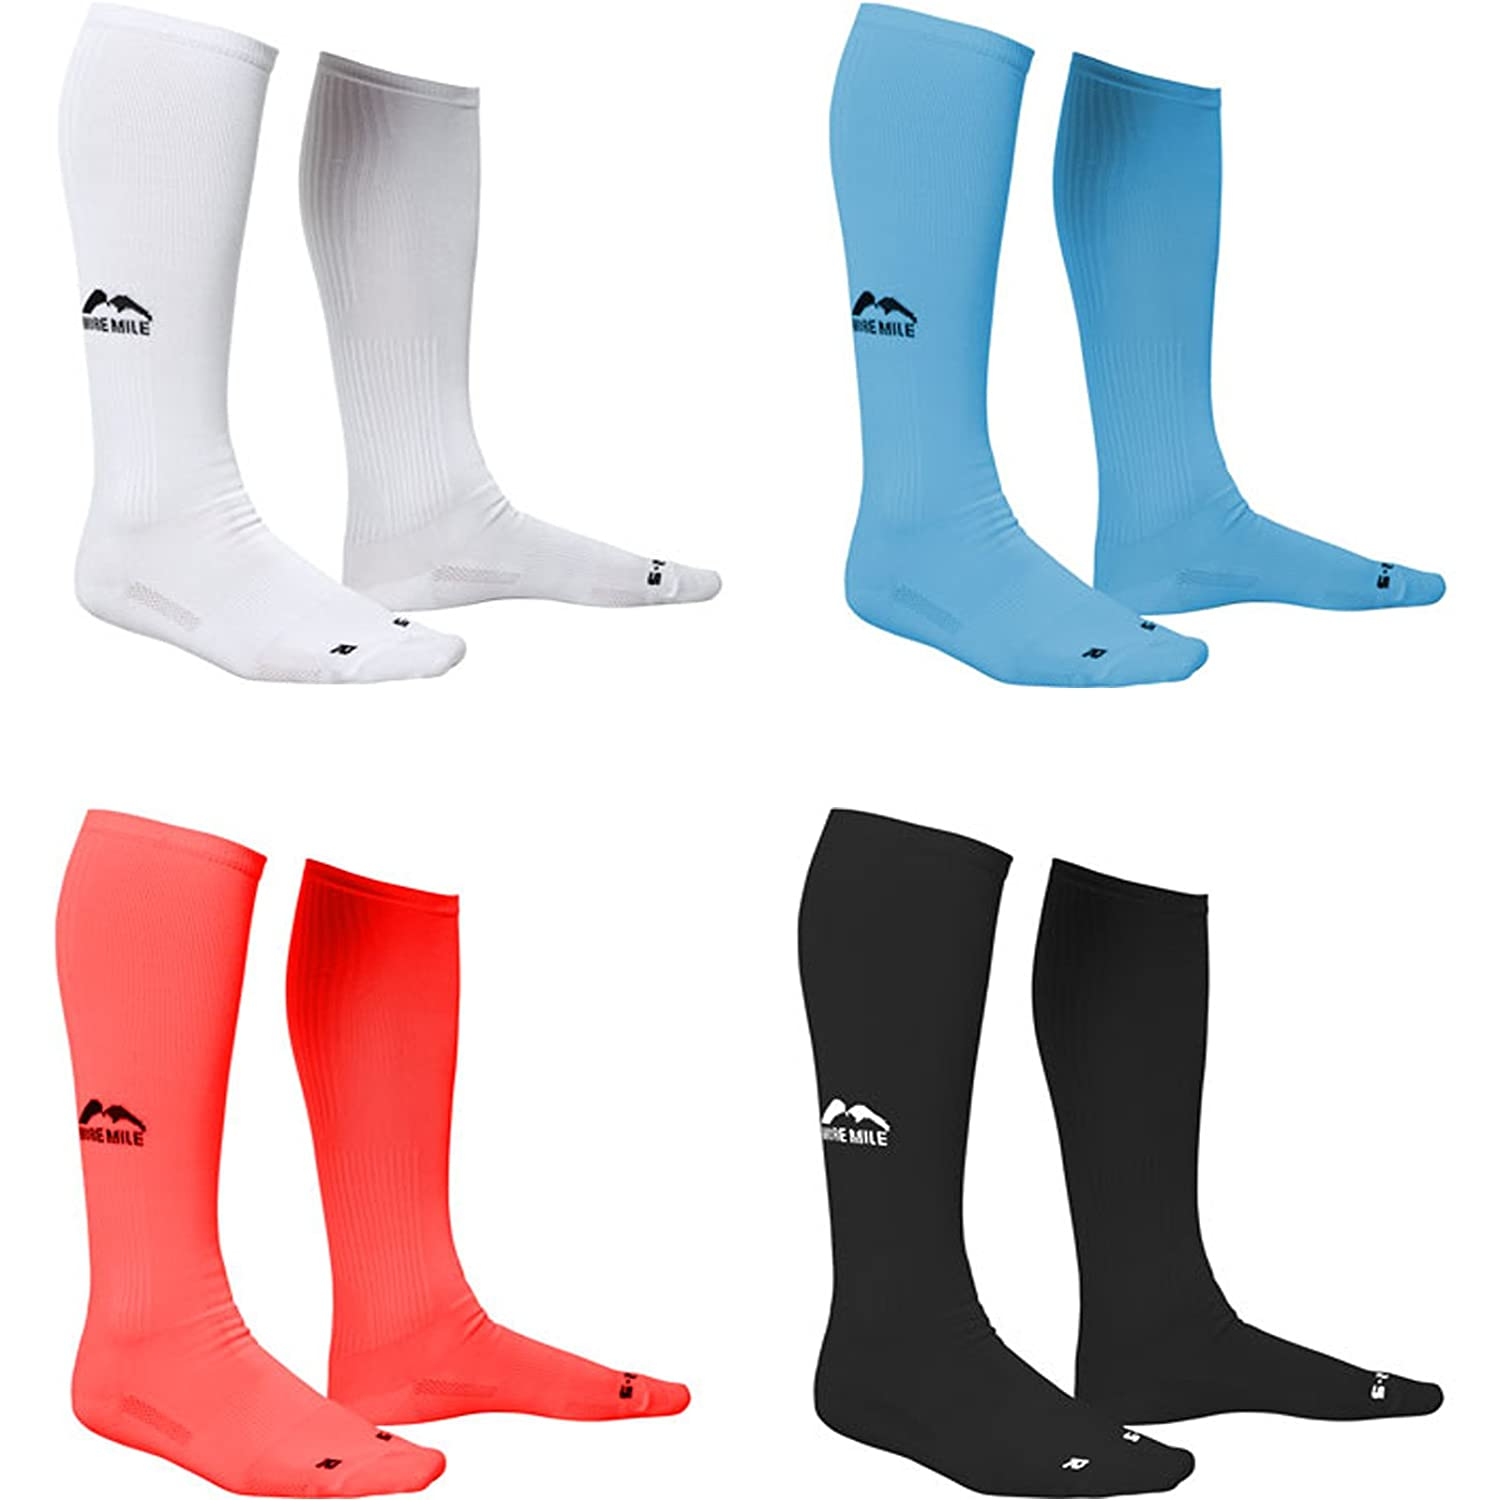 3 Pairs of More Mile Compression Running Cycling Fitness Socks Calf Length